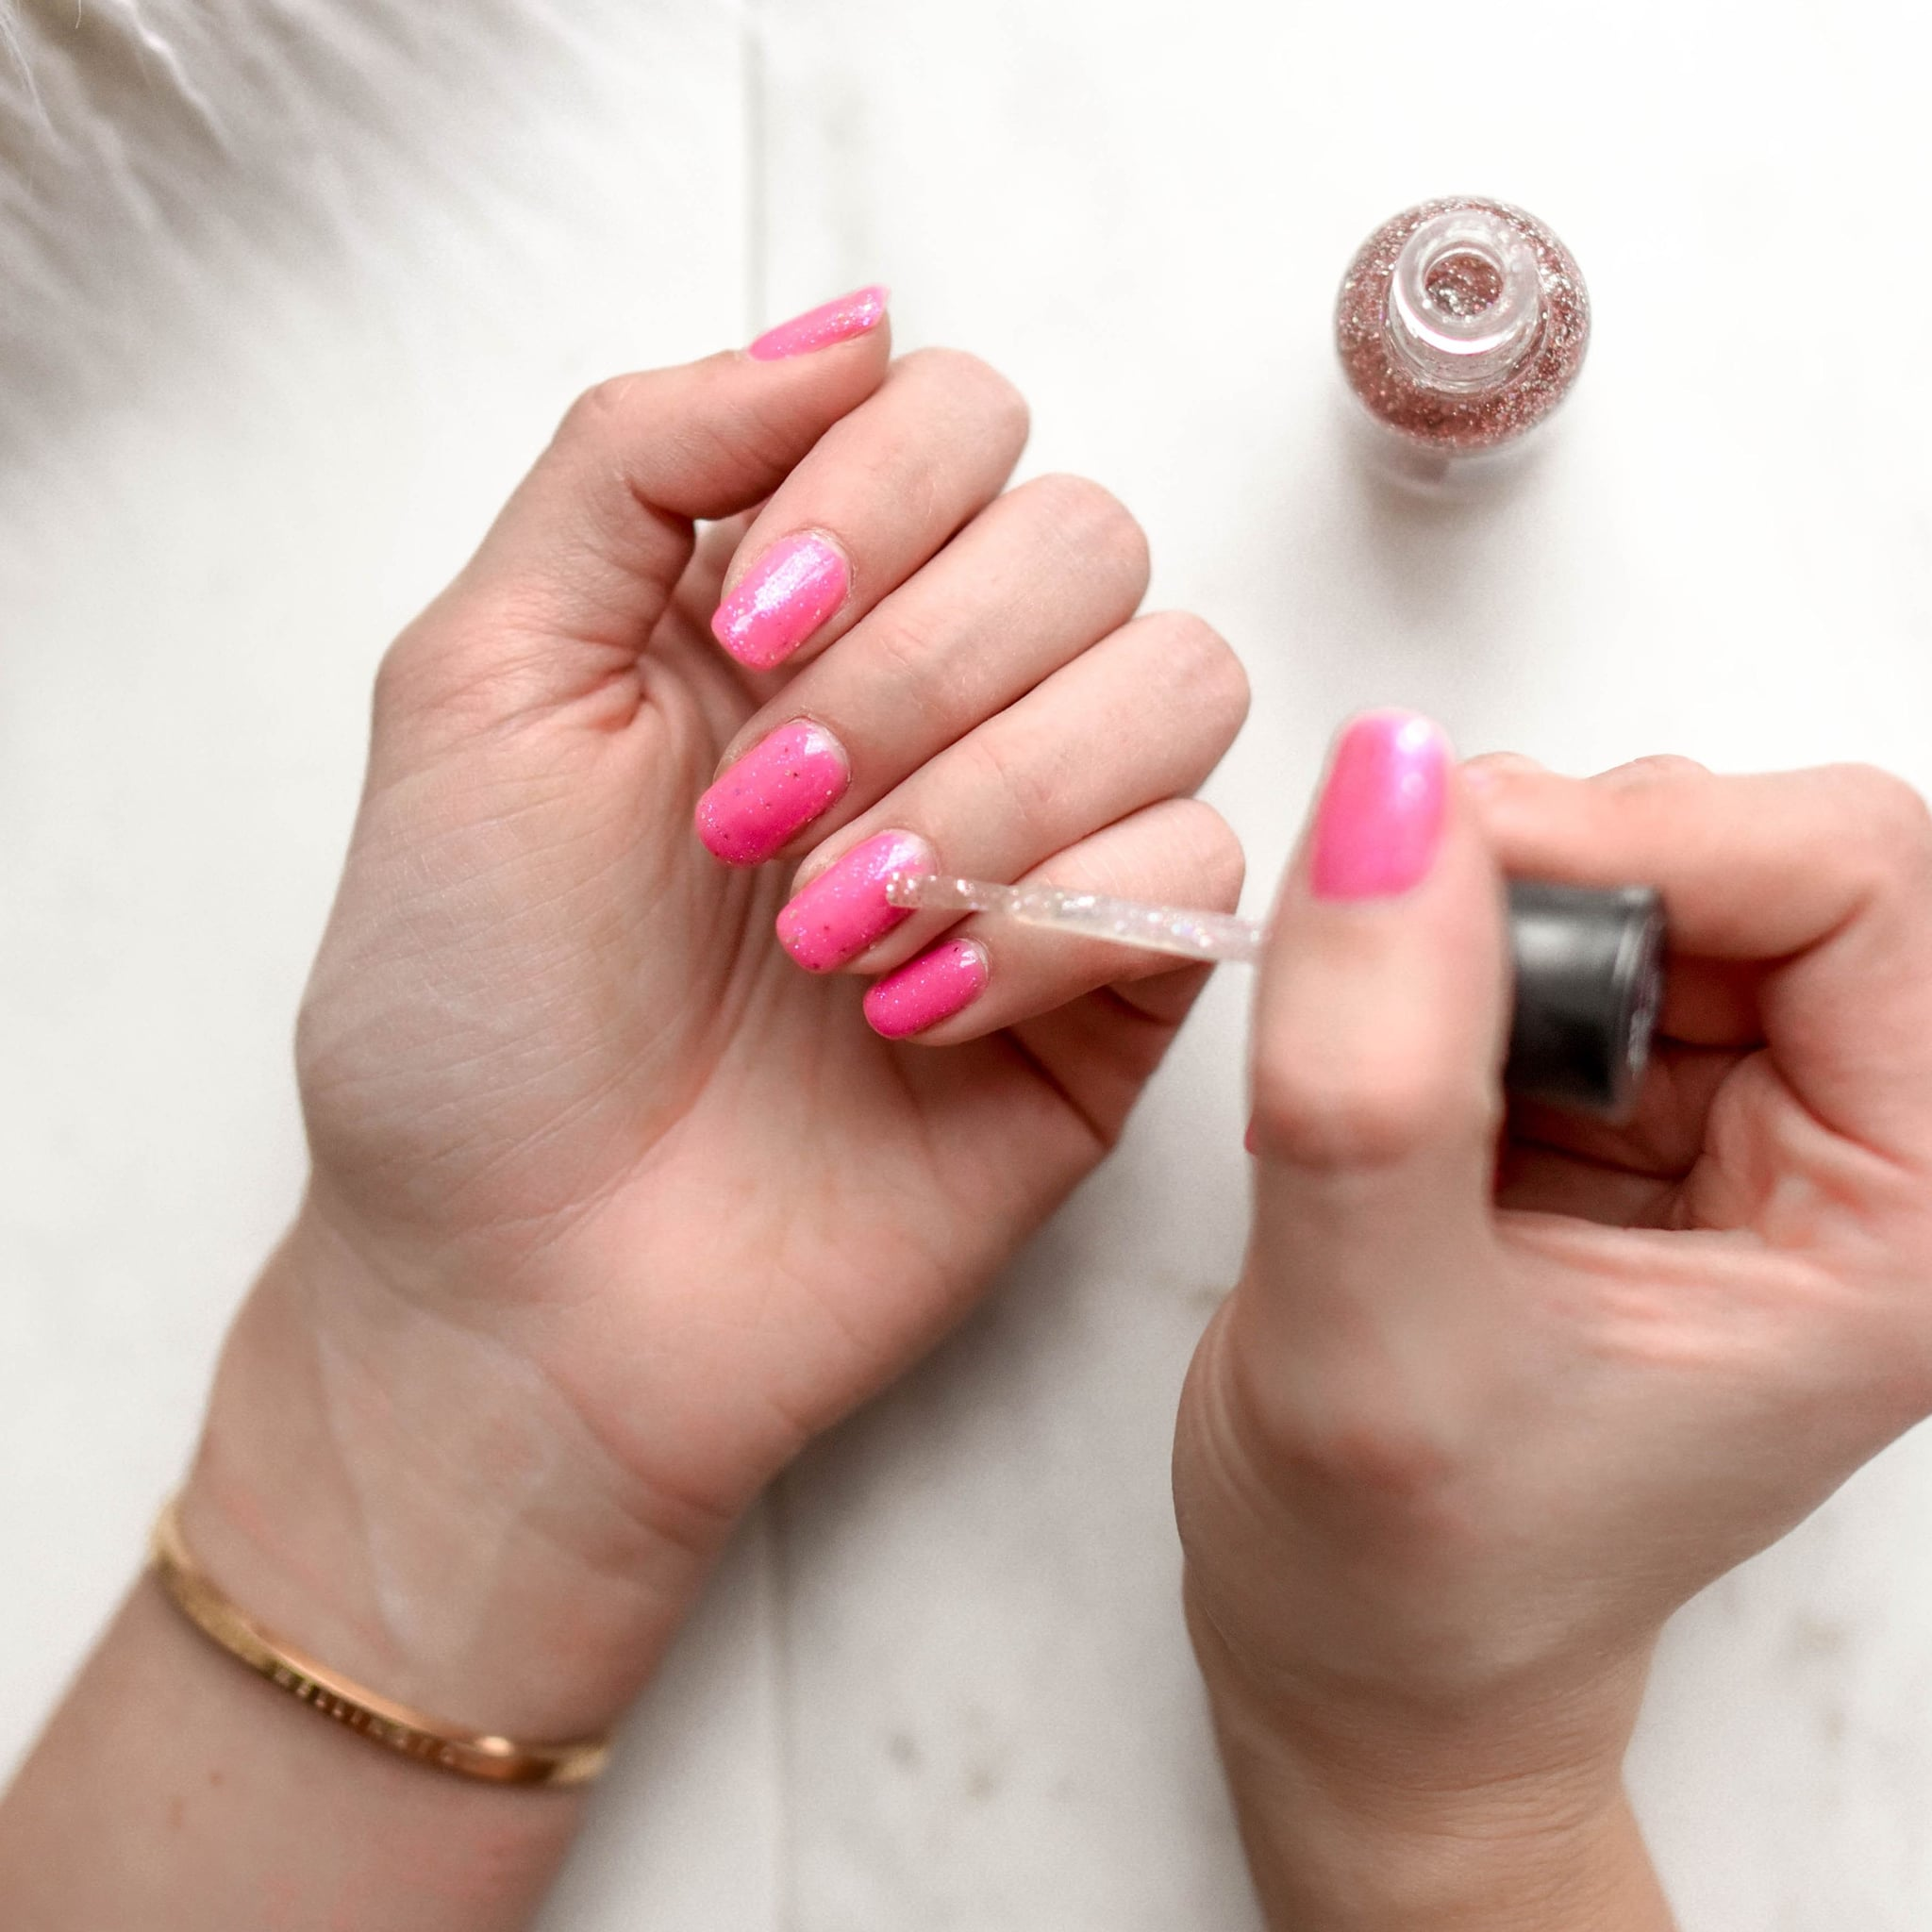 Mistakes manicure you should avoid making